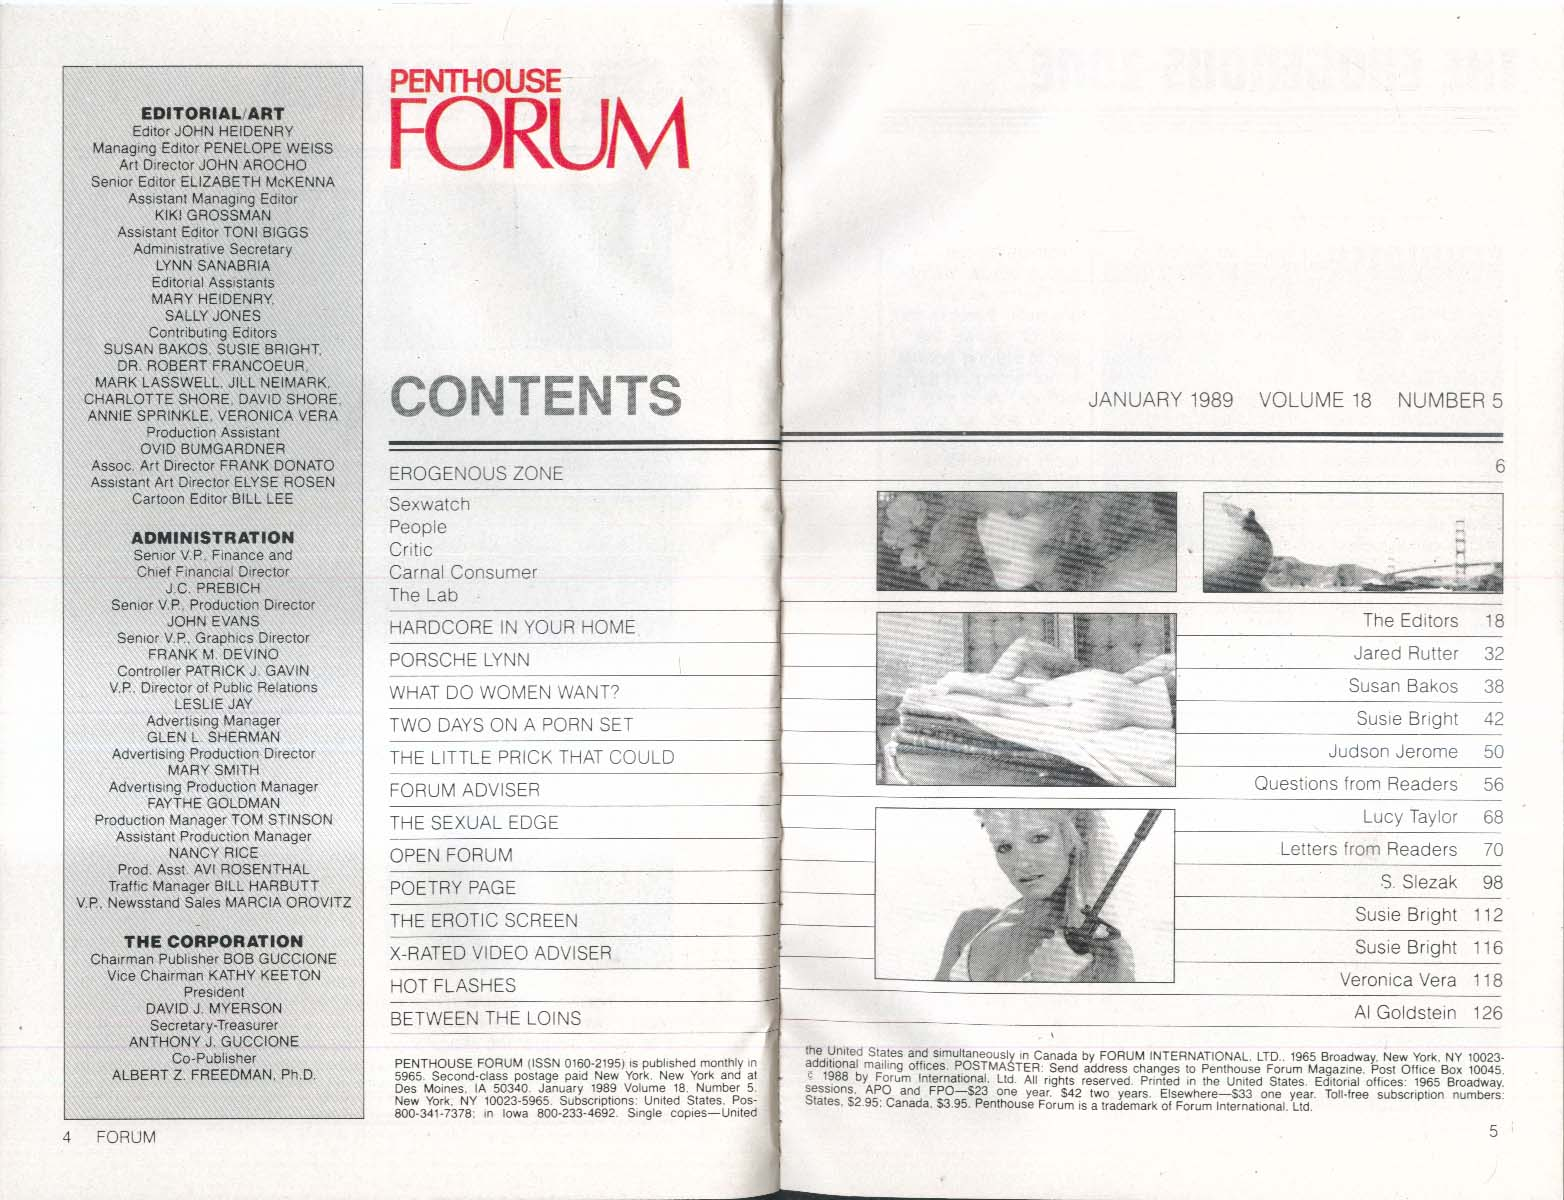 PENTHOUSE FORUM Porsche Lynn reader letters x rated video etc